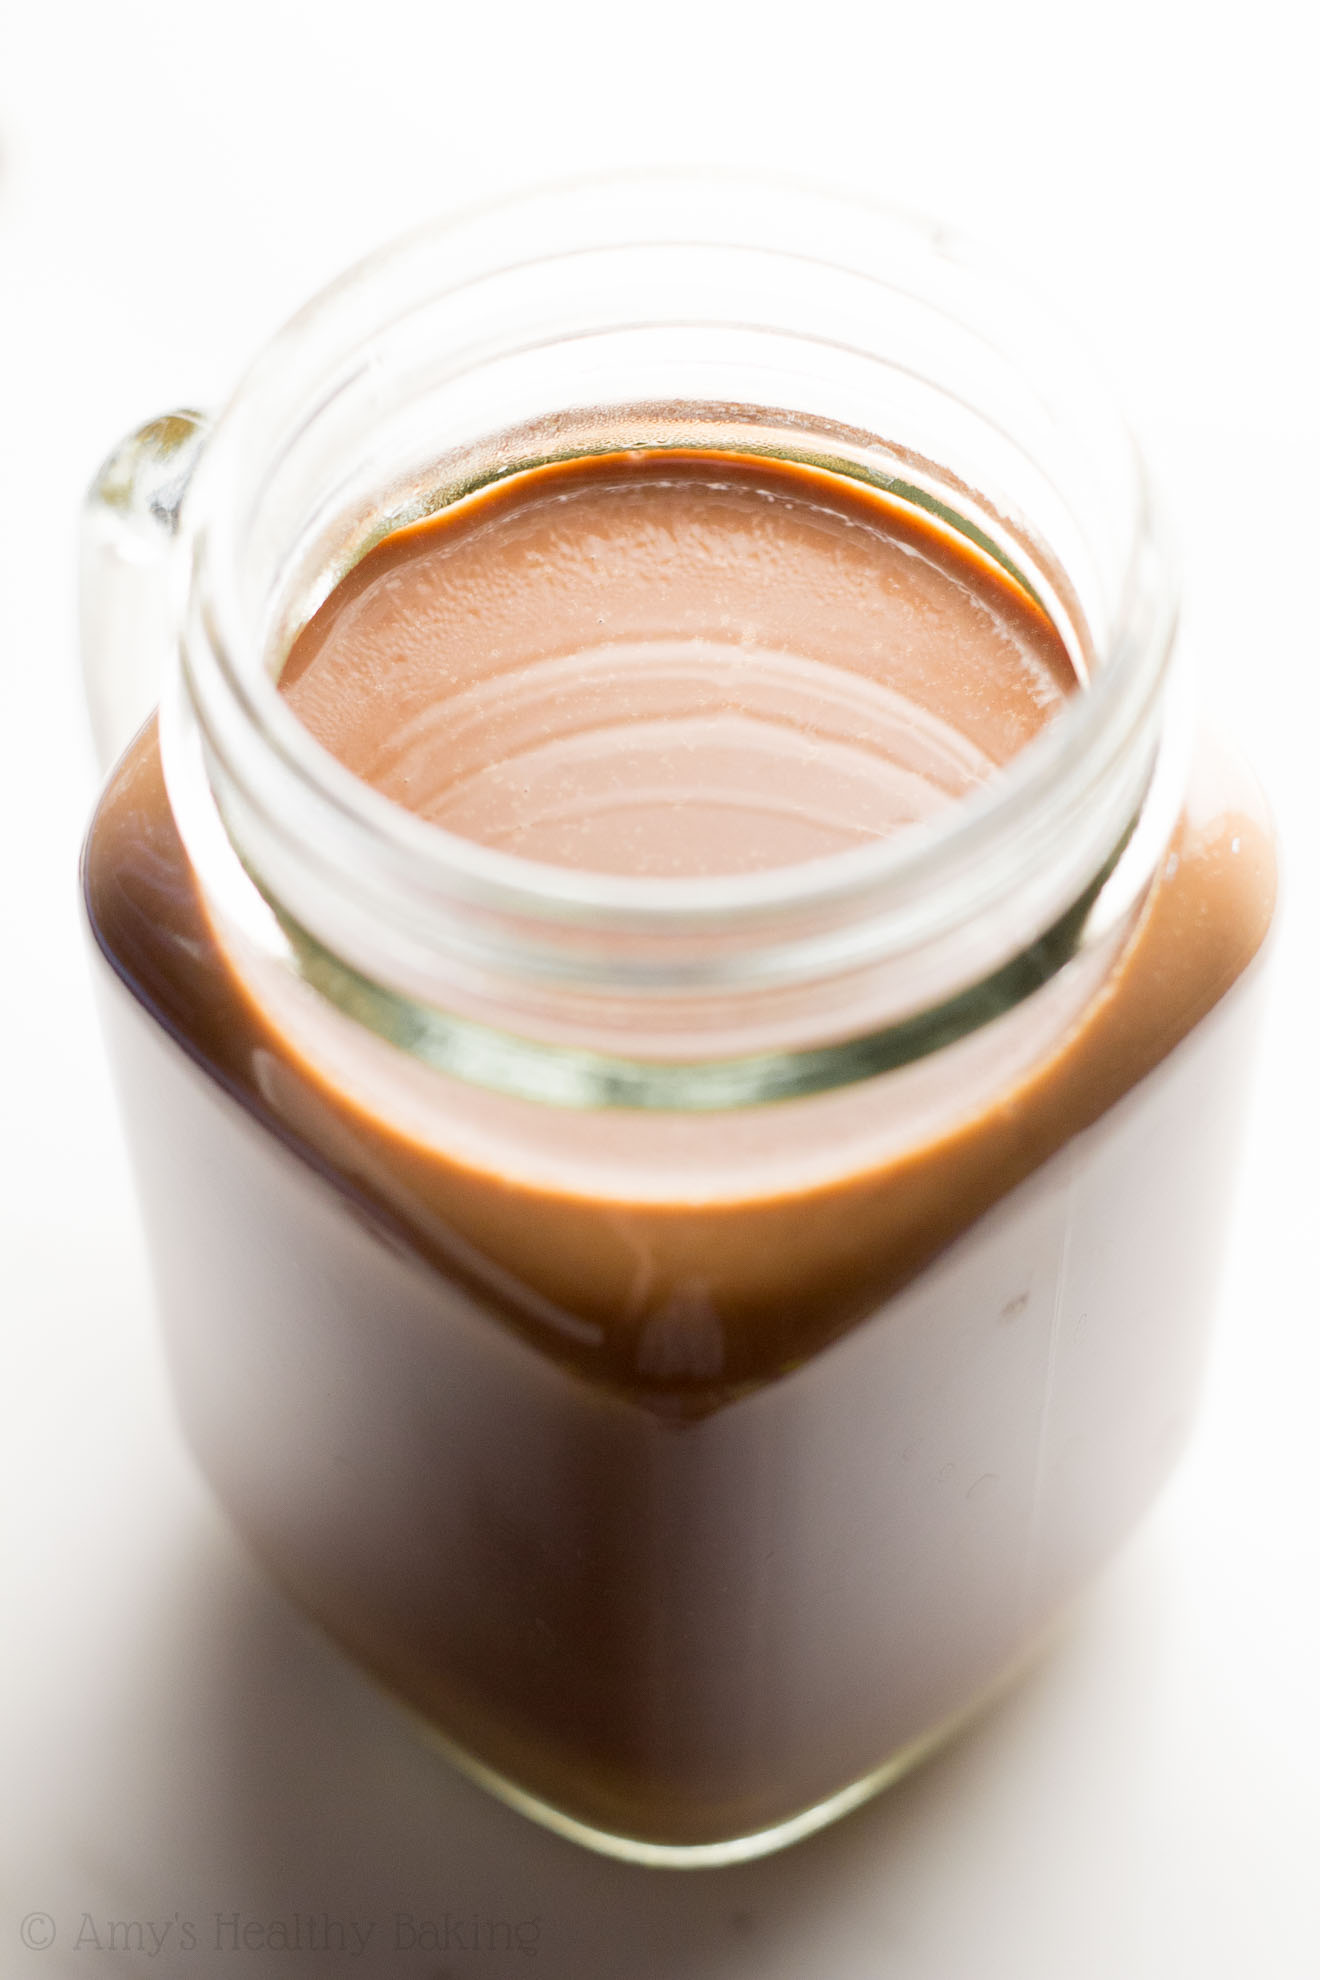 35-Calorie Hot Chocolate | Amy's Healthy Baking